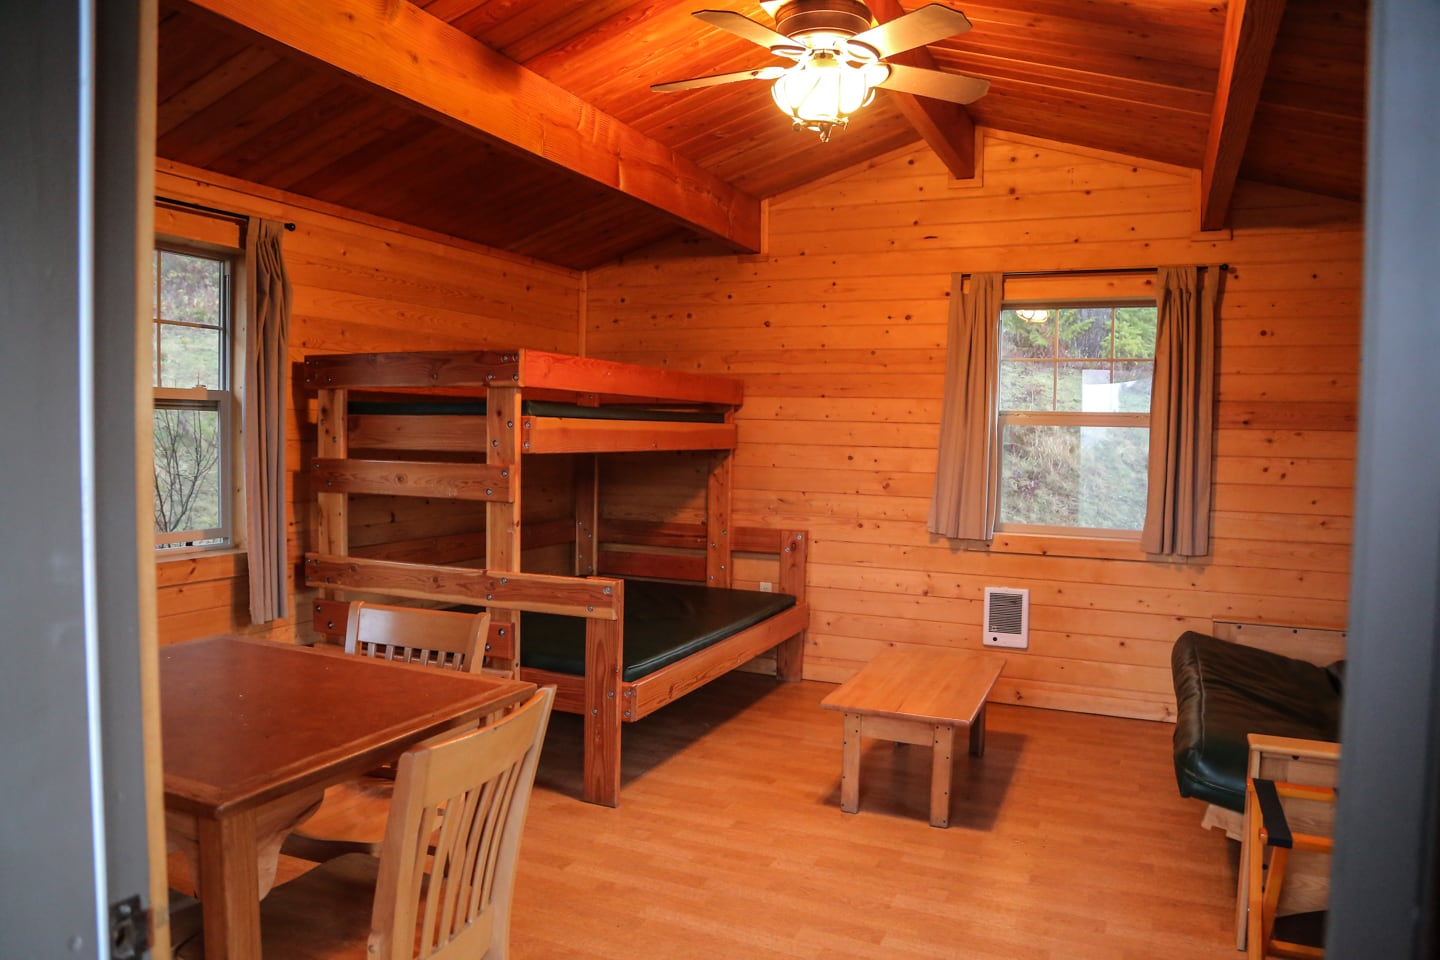 LL Stub Stewart State Park camping cabins